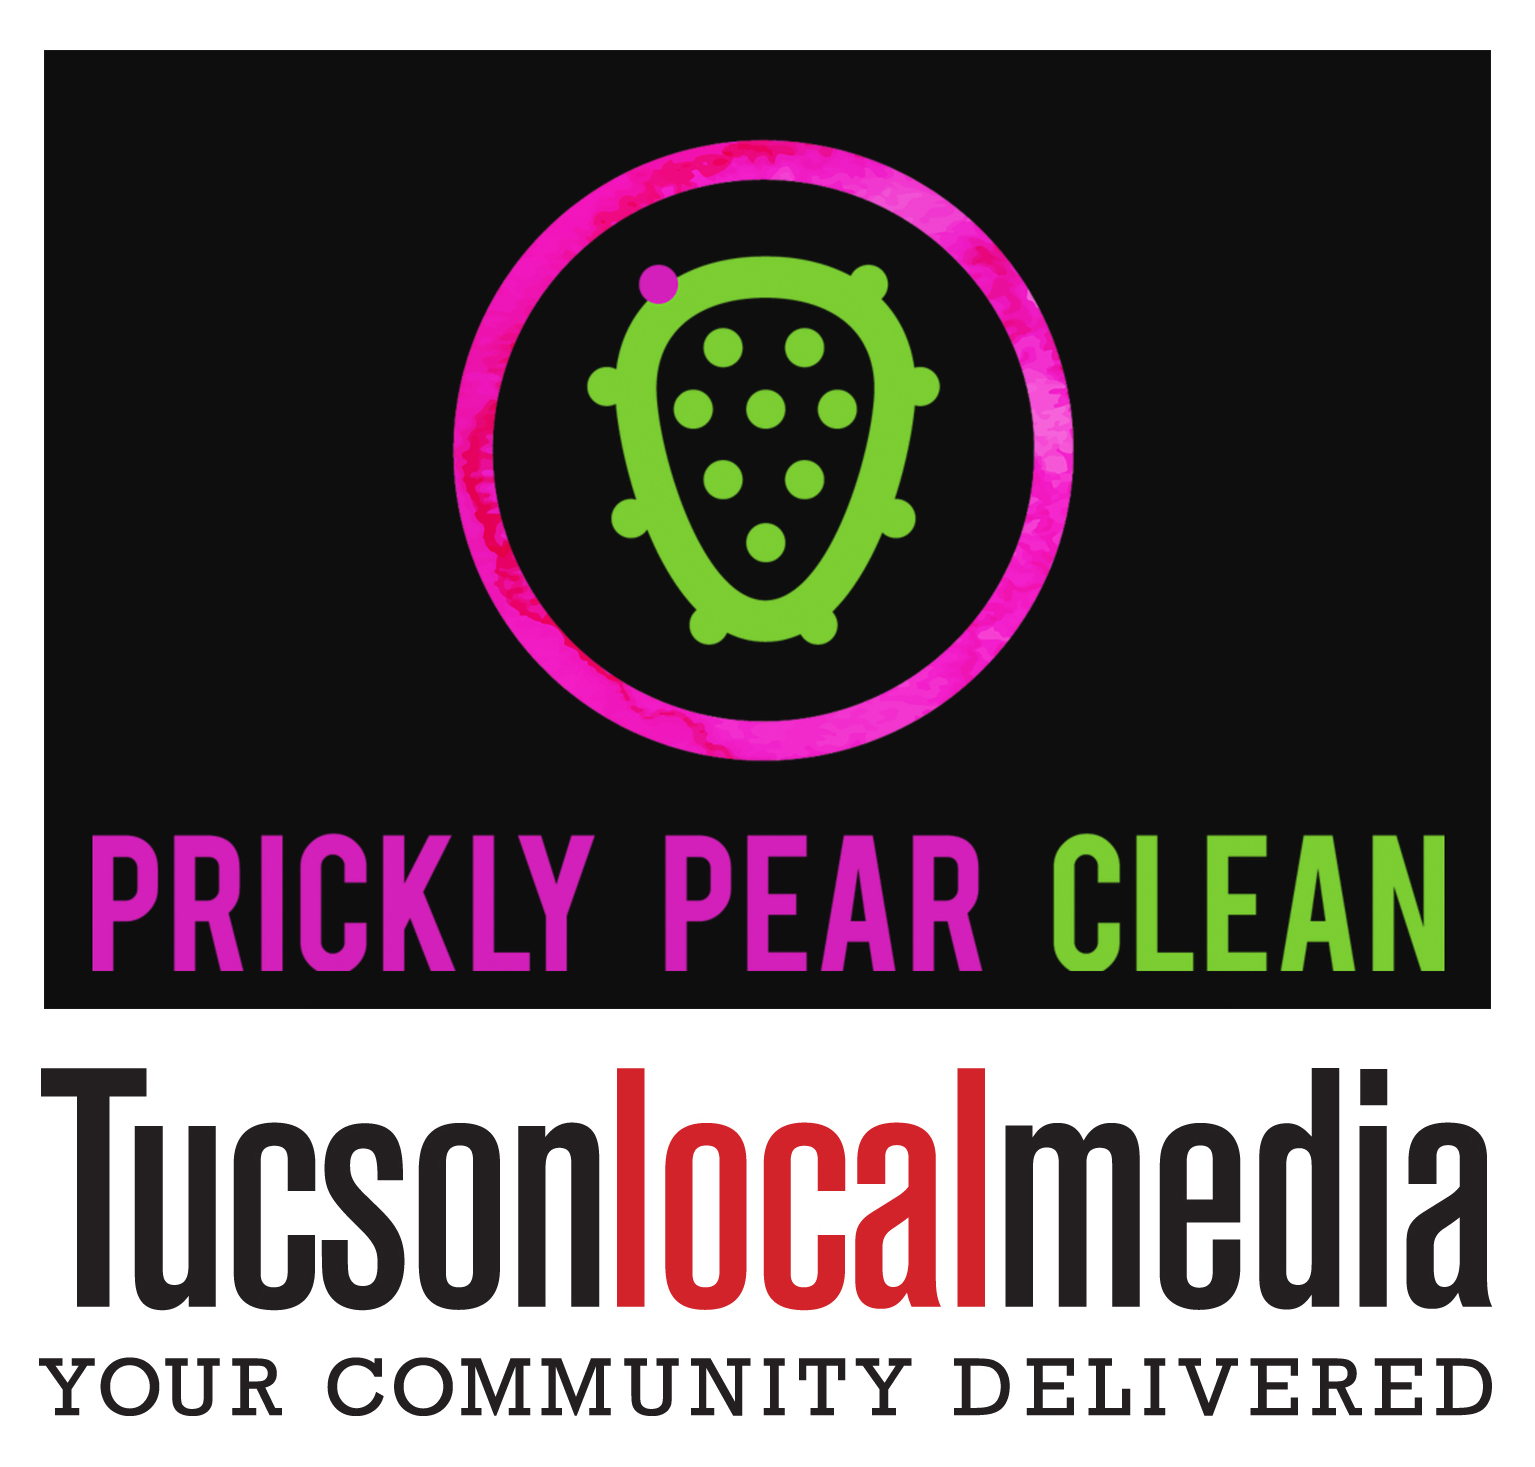 Out & About Host: Prickly Pear Clean & Tucson Local Media